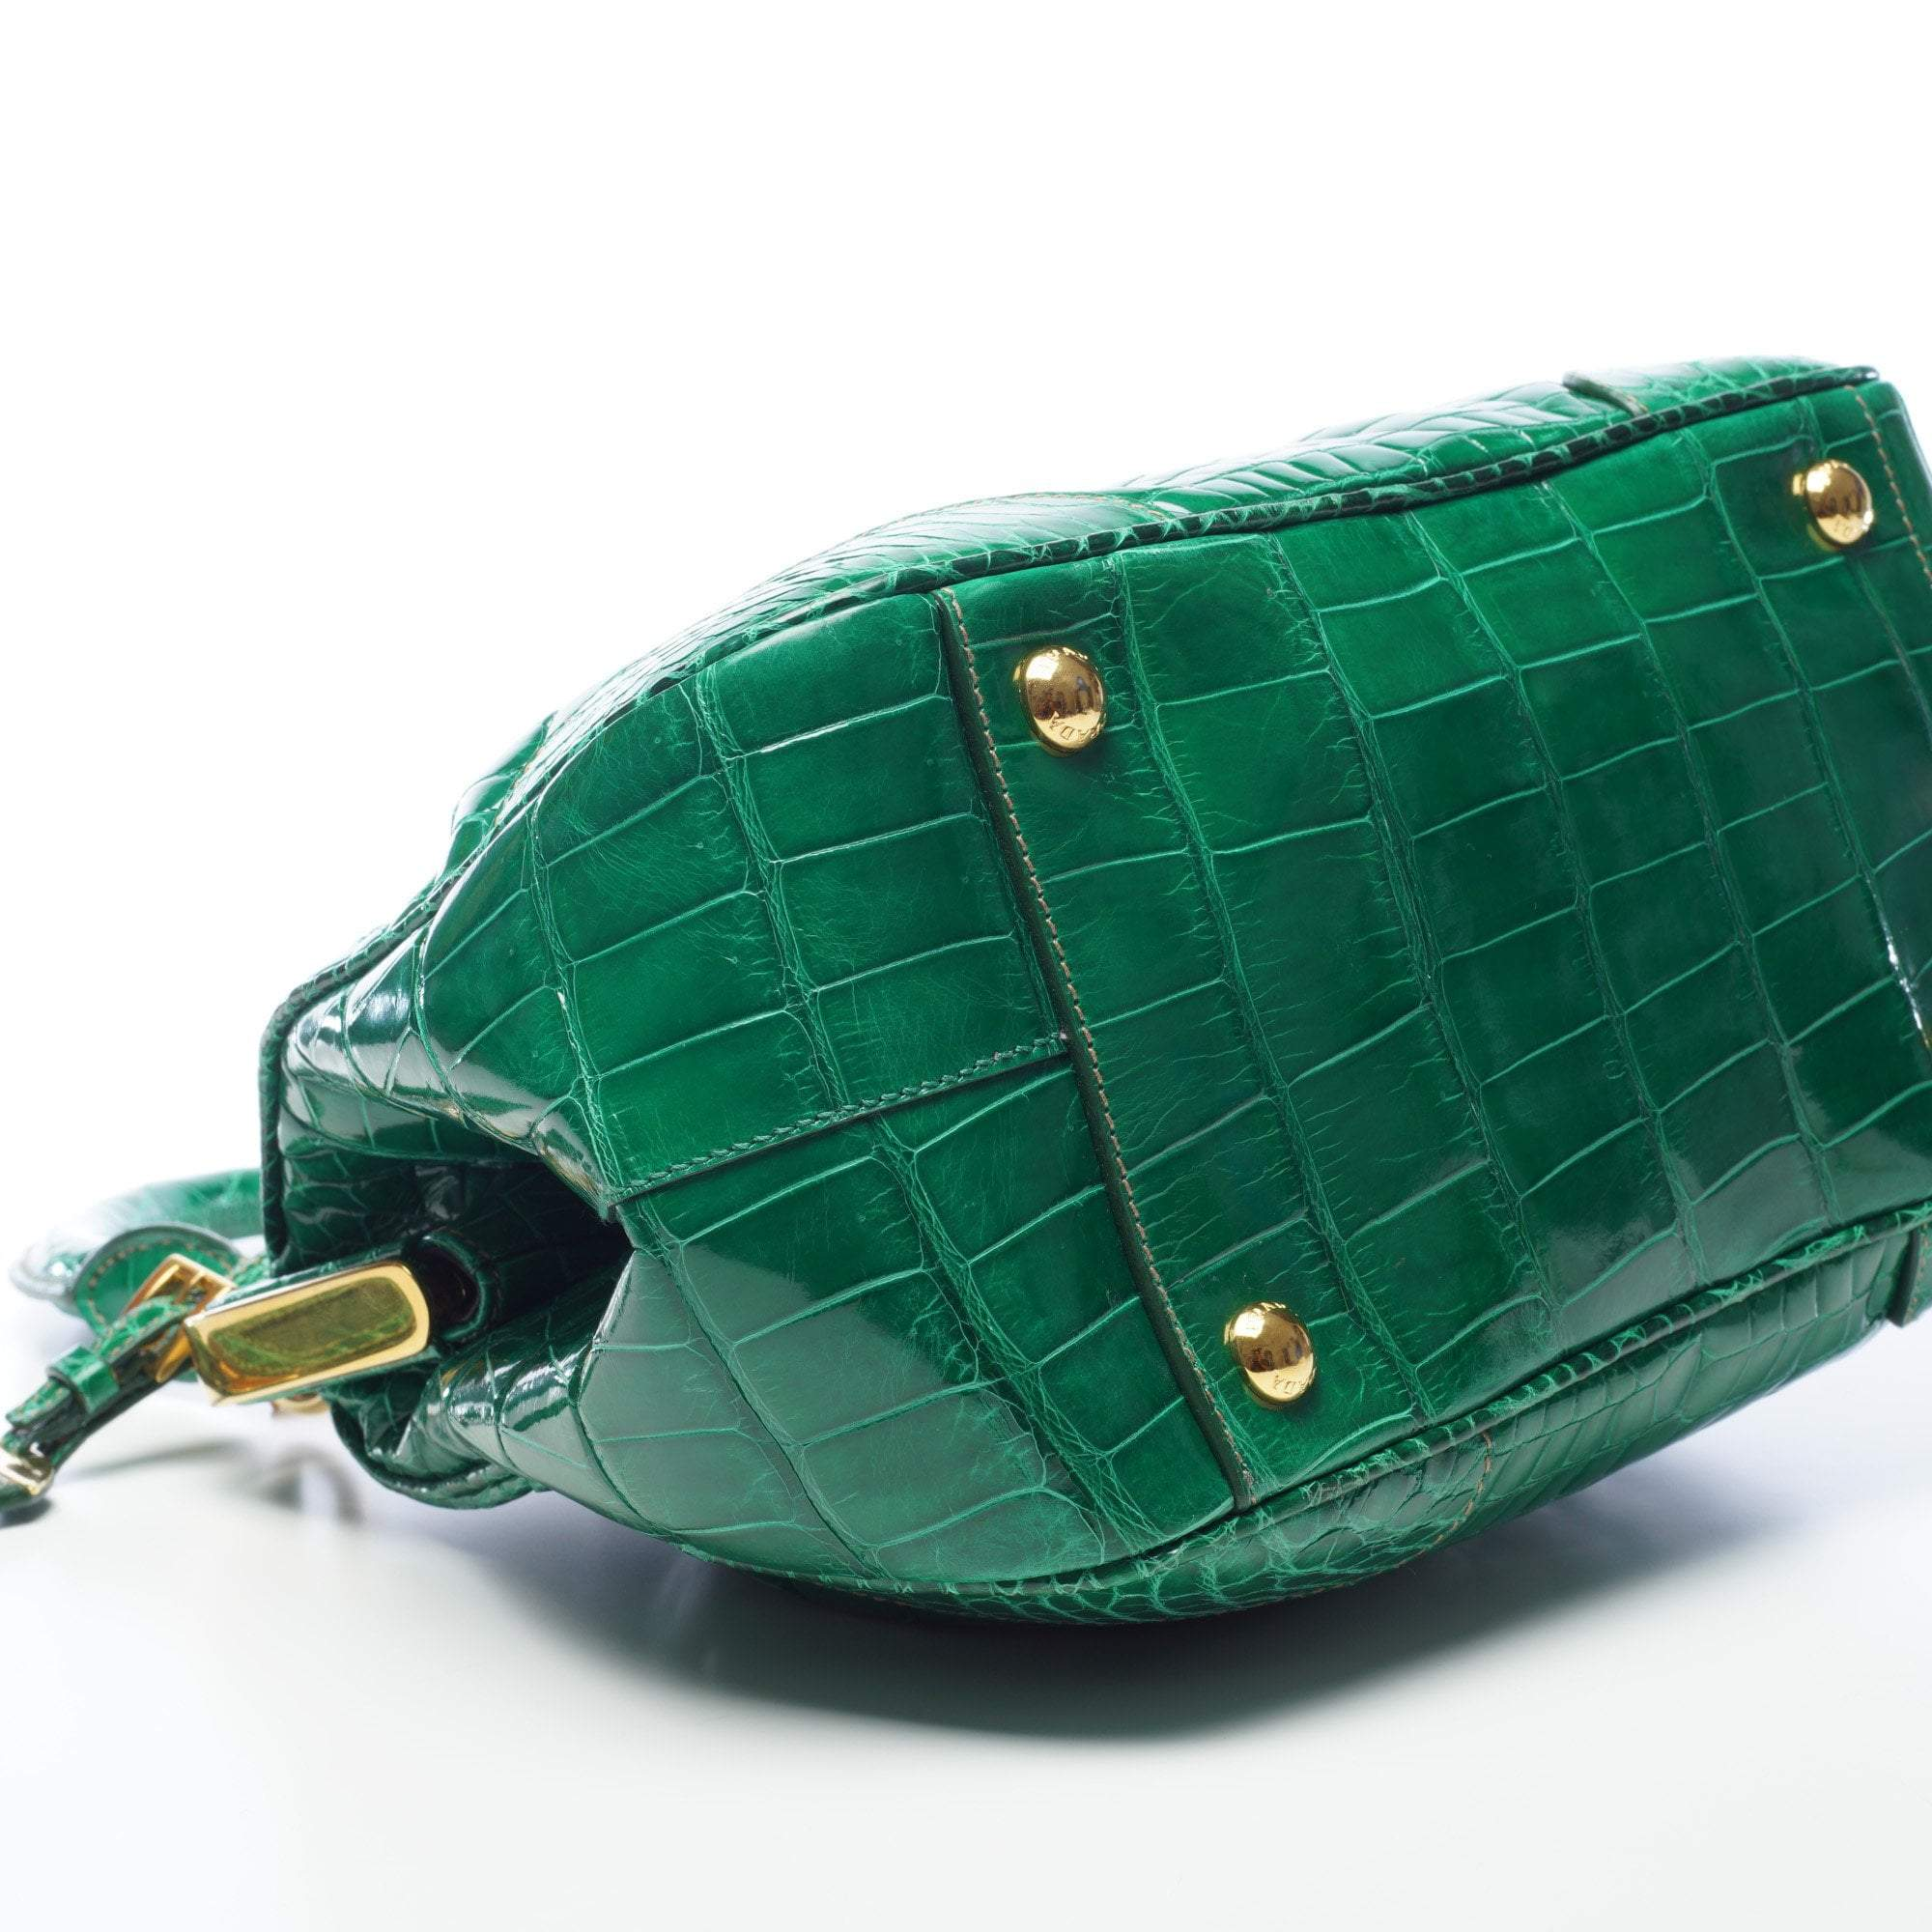 Prada Green Crocodile Top Handle Frame Bag